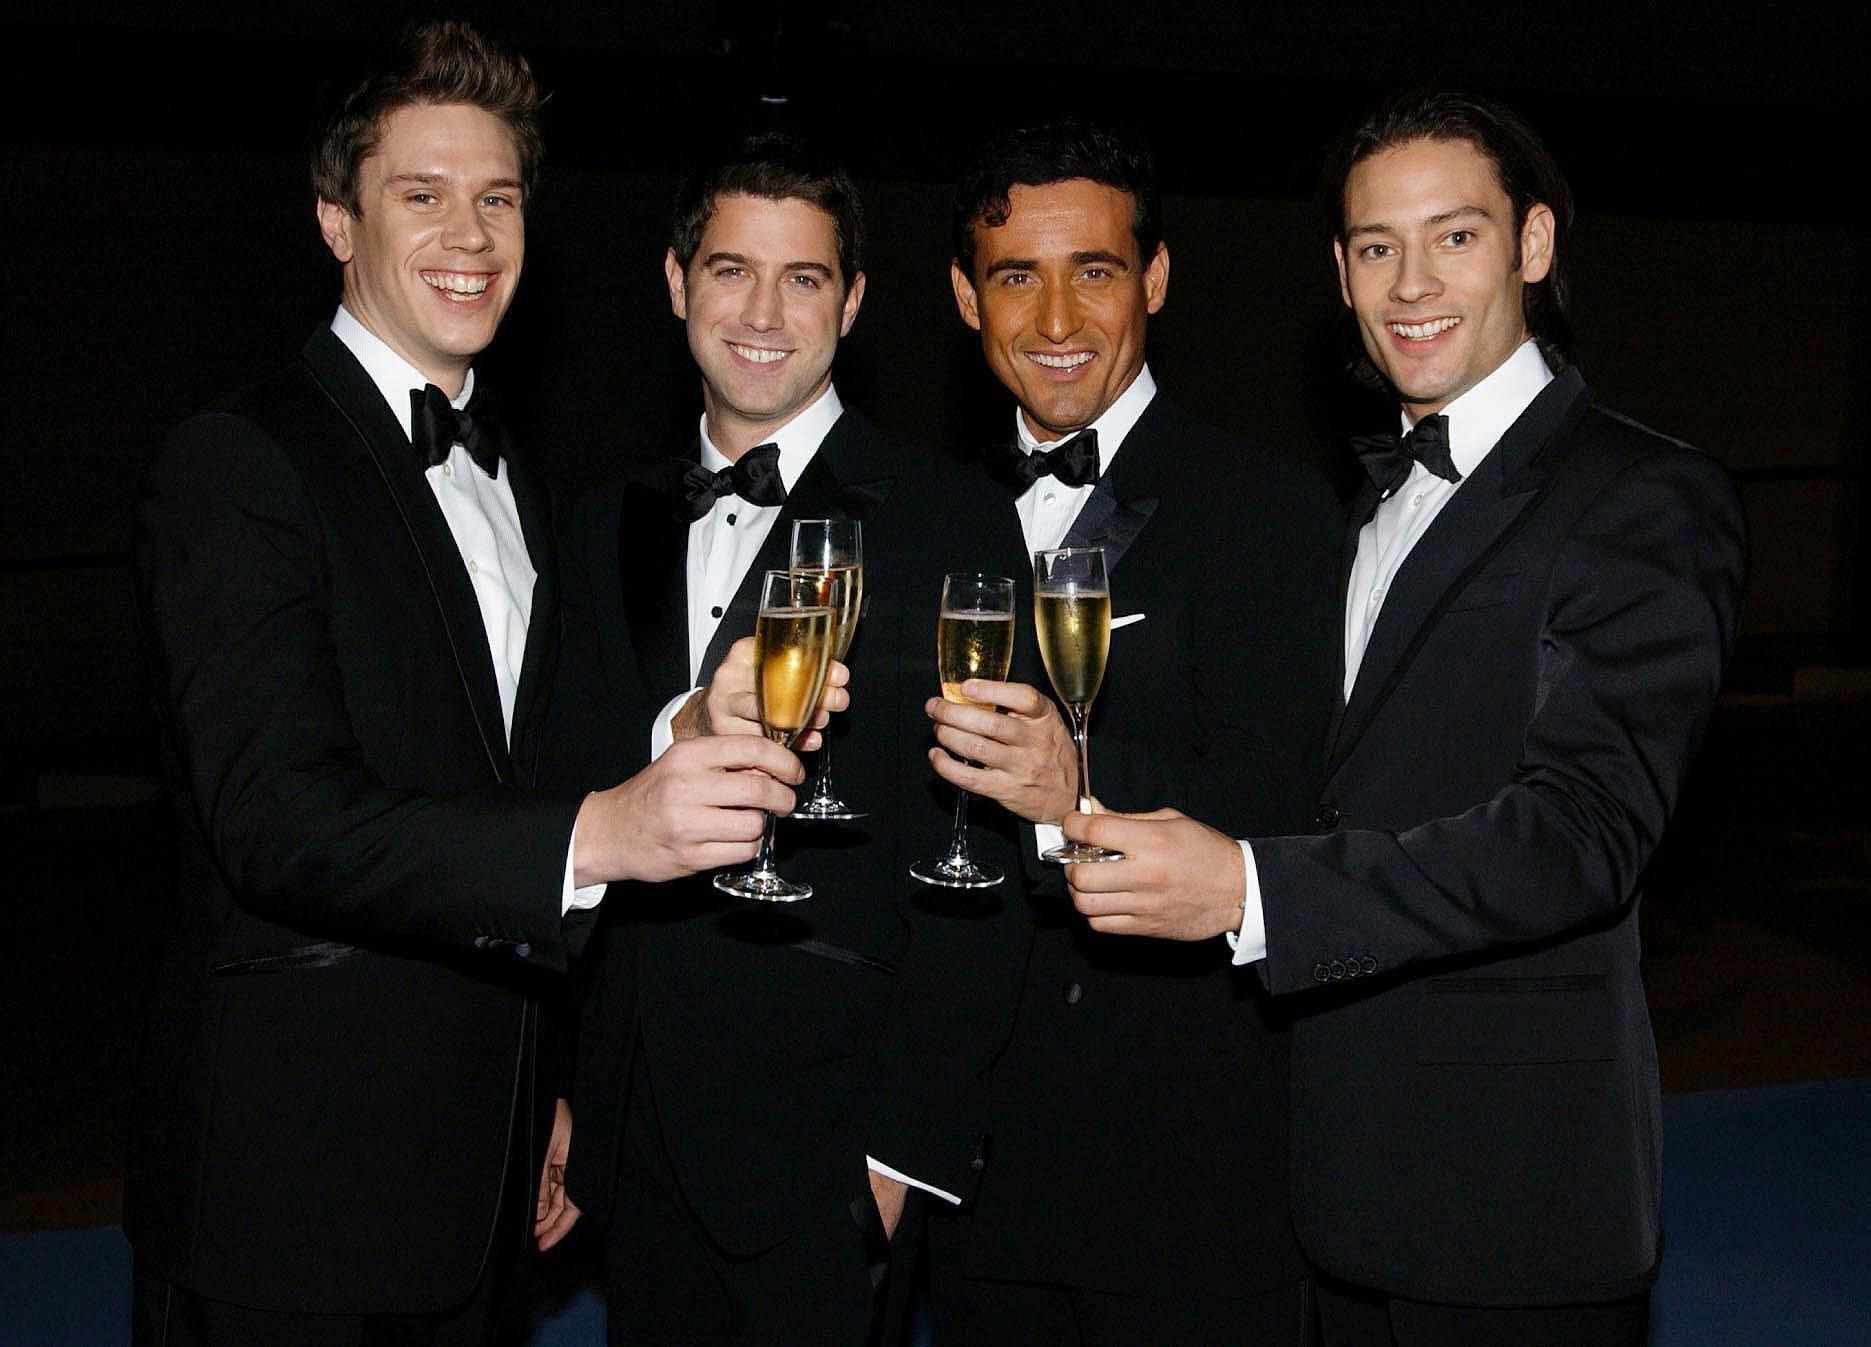 Il Divo: American Idol almost put us off forming